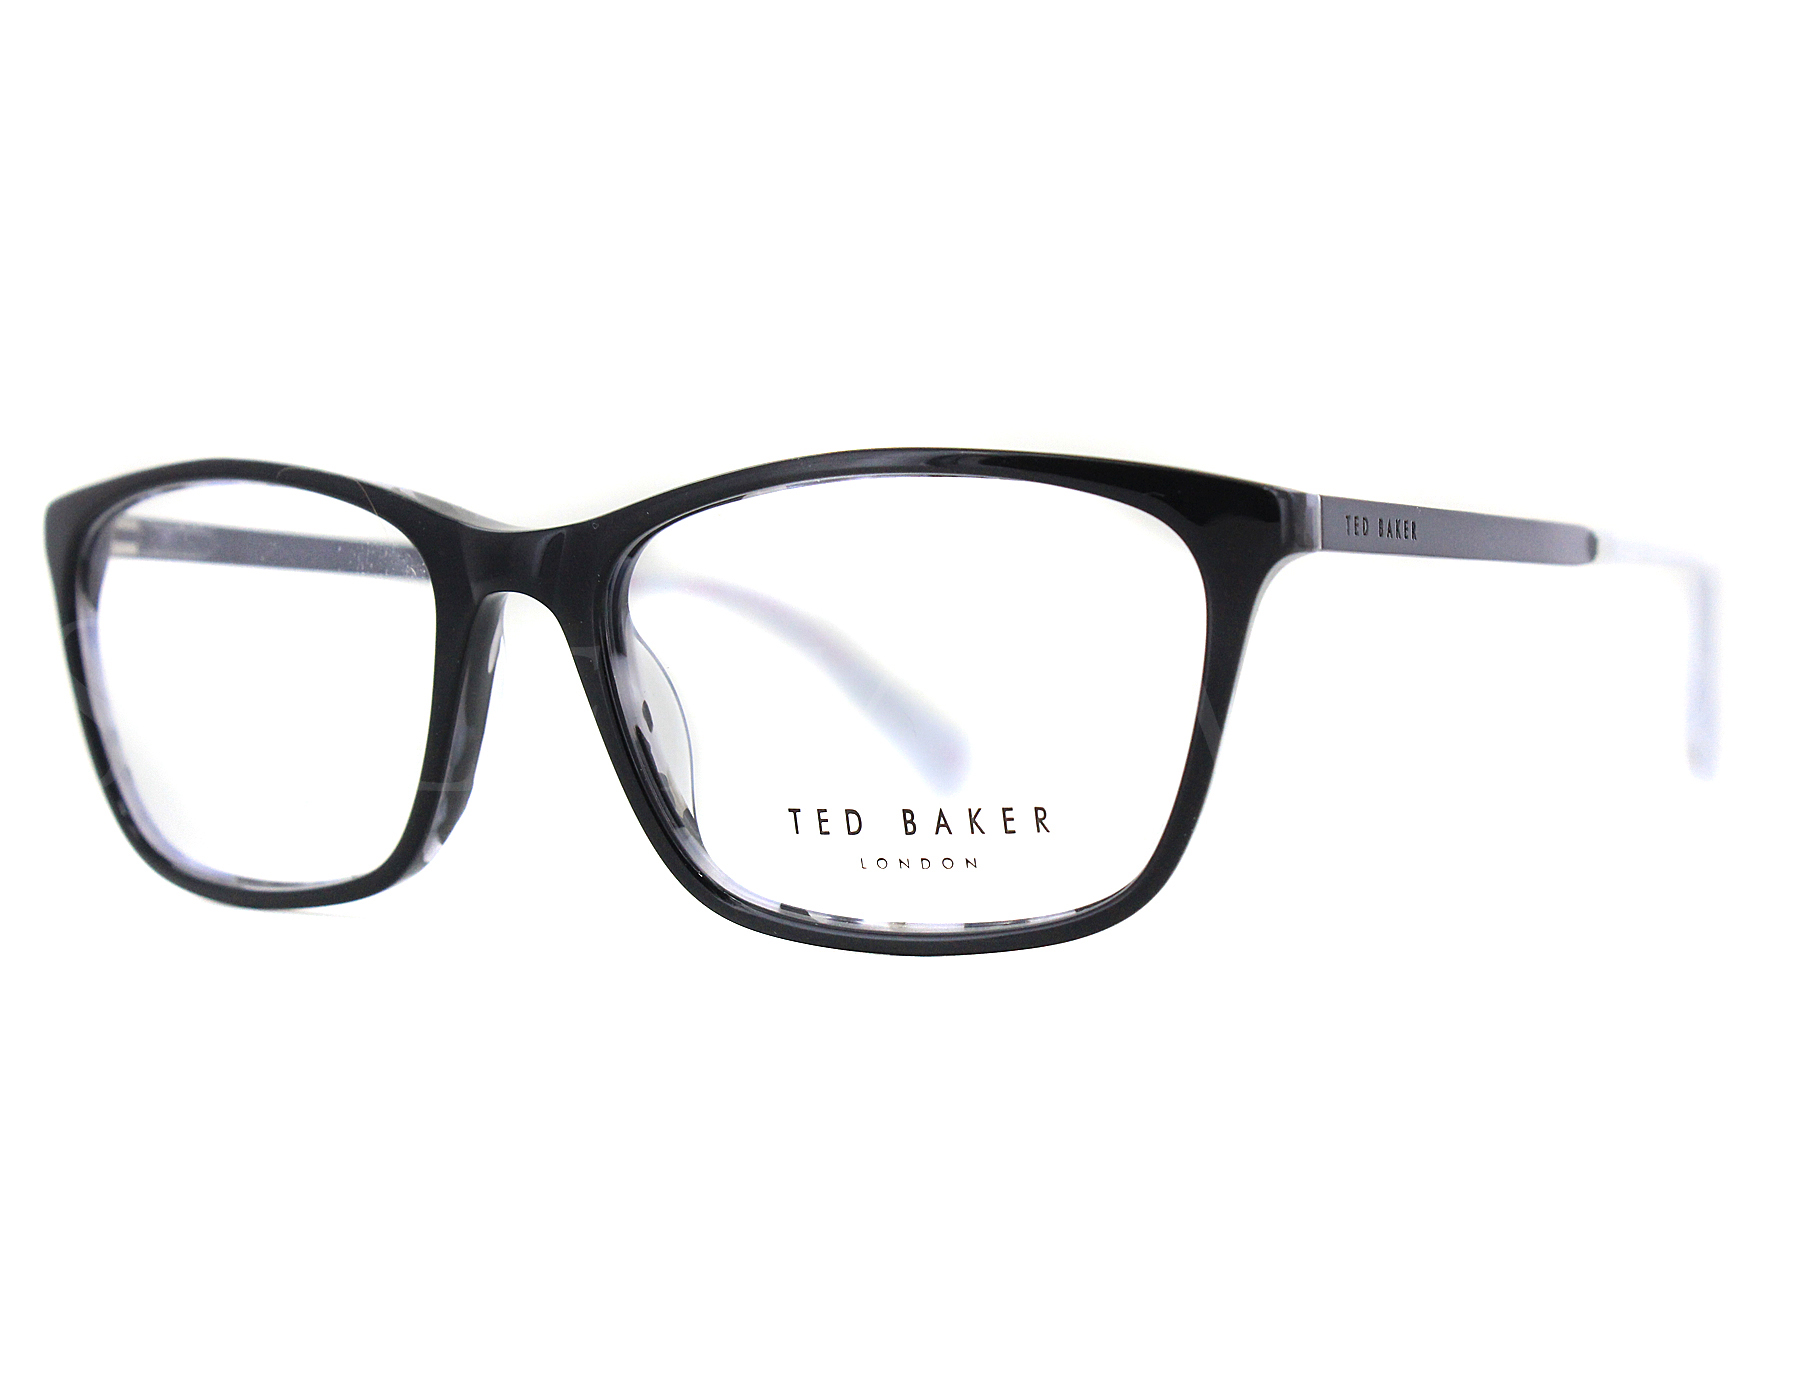 818c1b4e3e Details about NEW Ted Baker Persy TB 9097 001 52mm Black Optical Eyeglasses  Frames